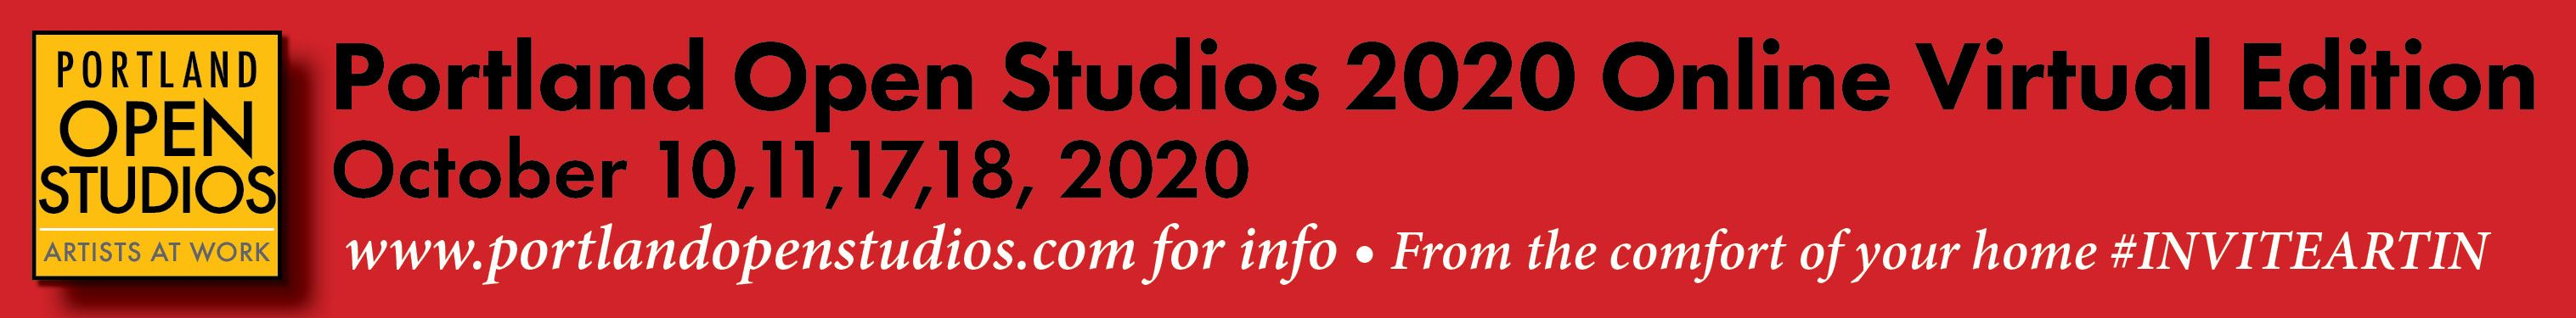 91 artists are part of the 2020 Portland Open Studios VIRTUAL Event on October 10, 11, 17, 18